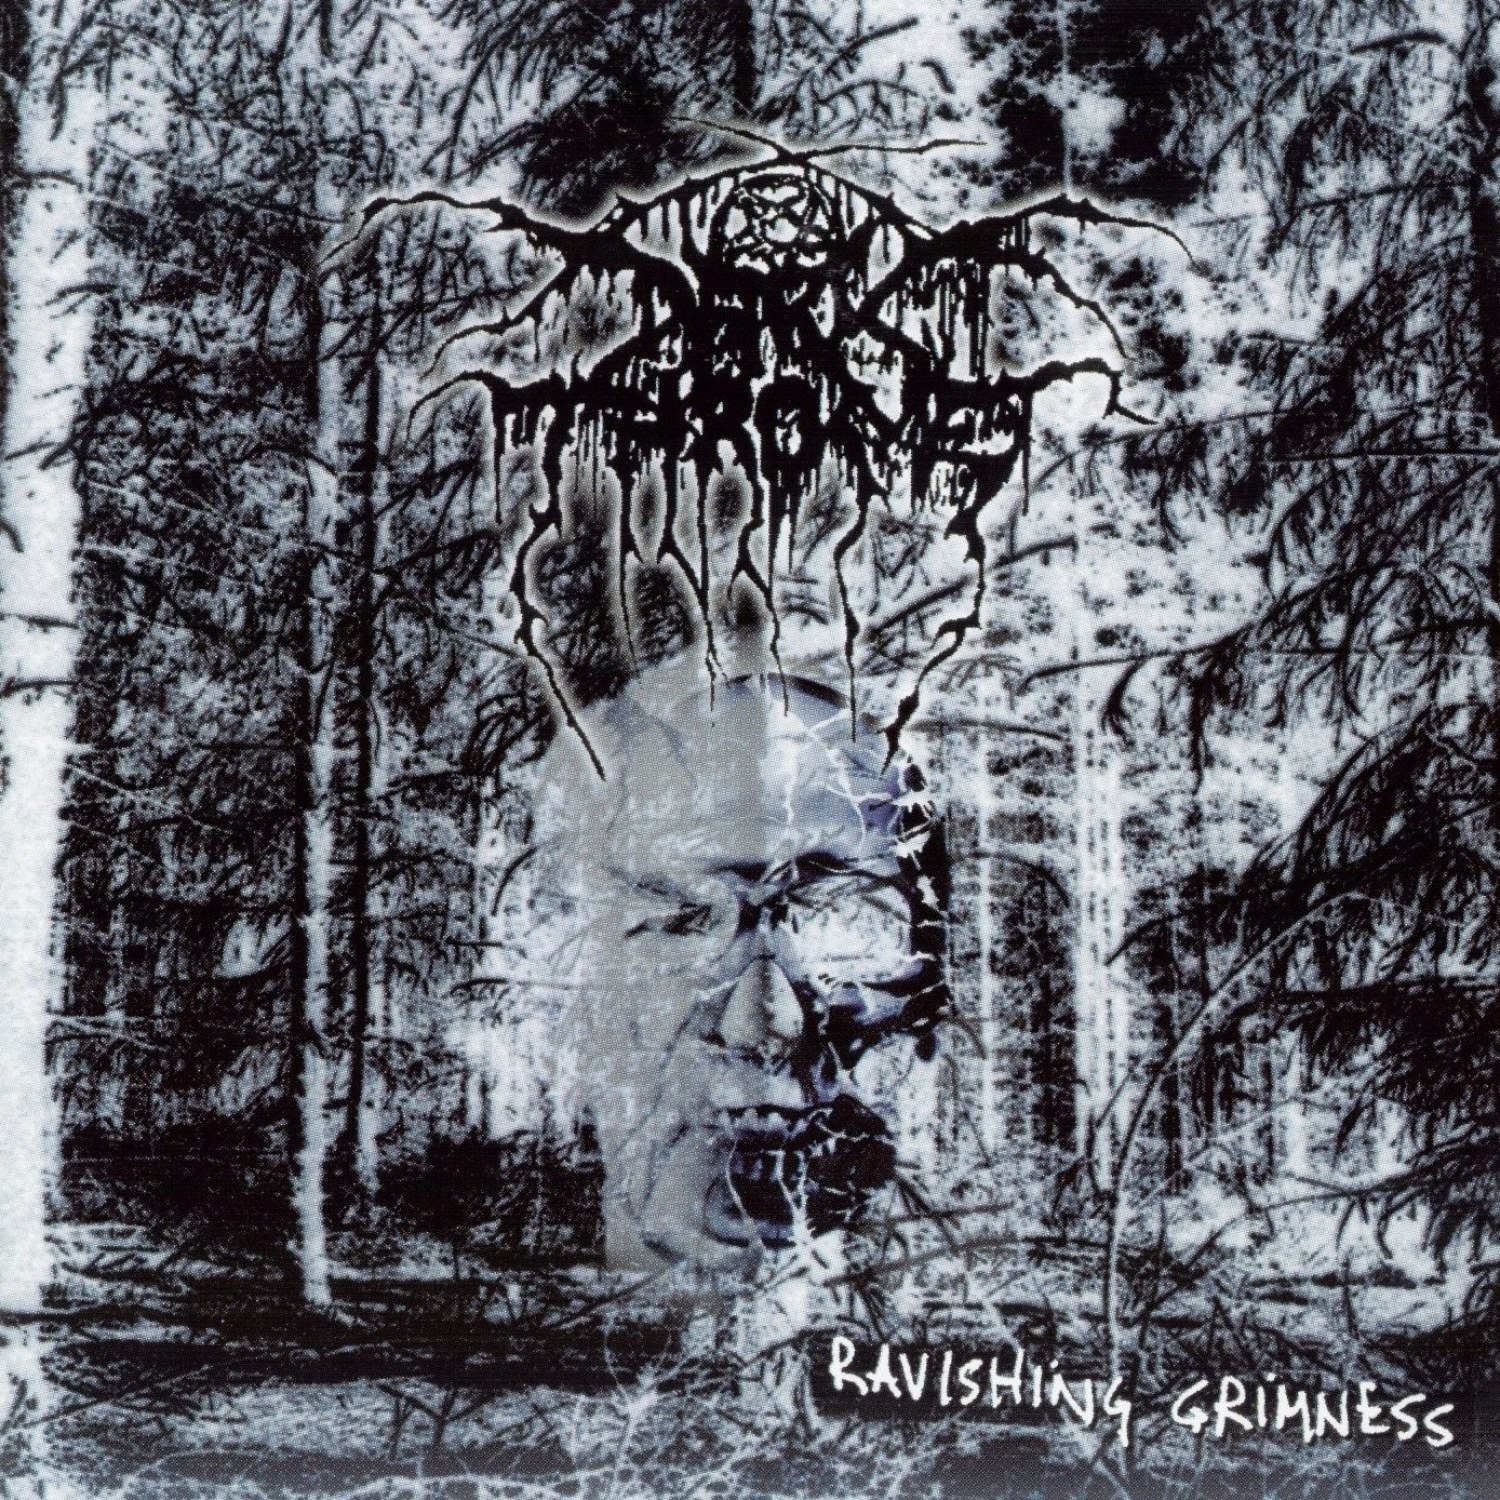 Review for Darkthrone - Ravishing Grimness